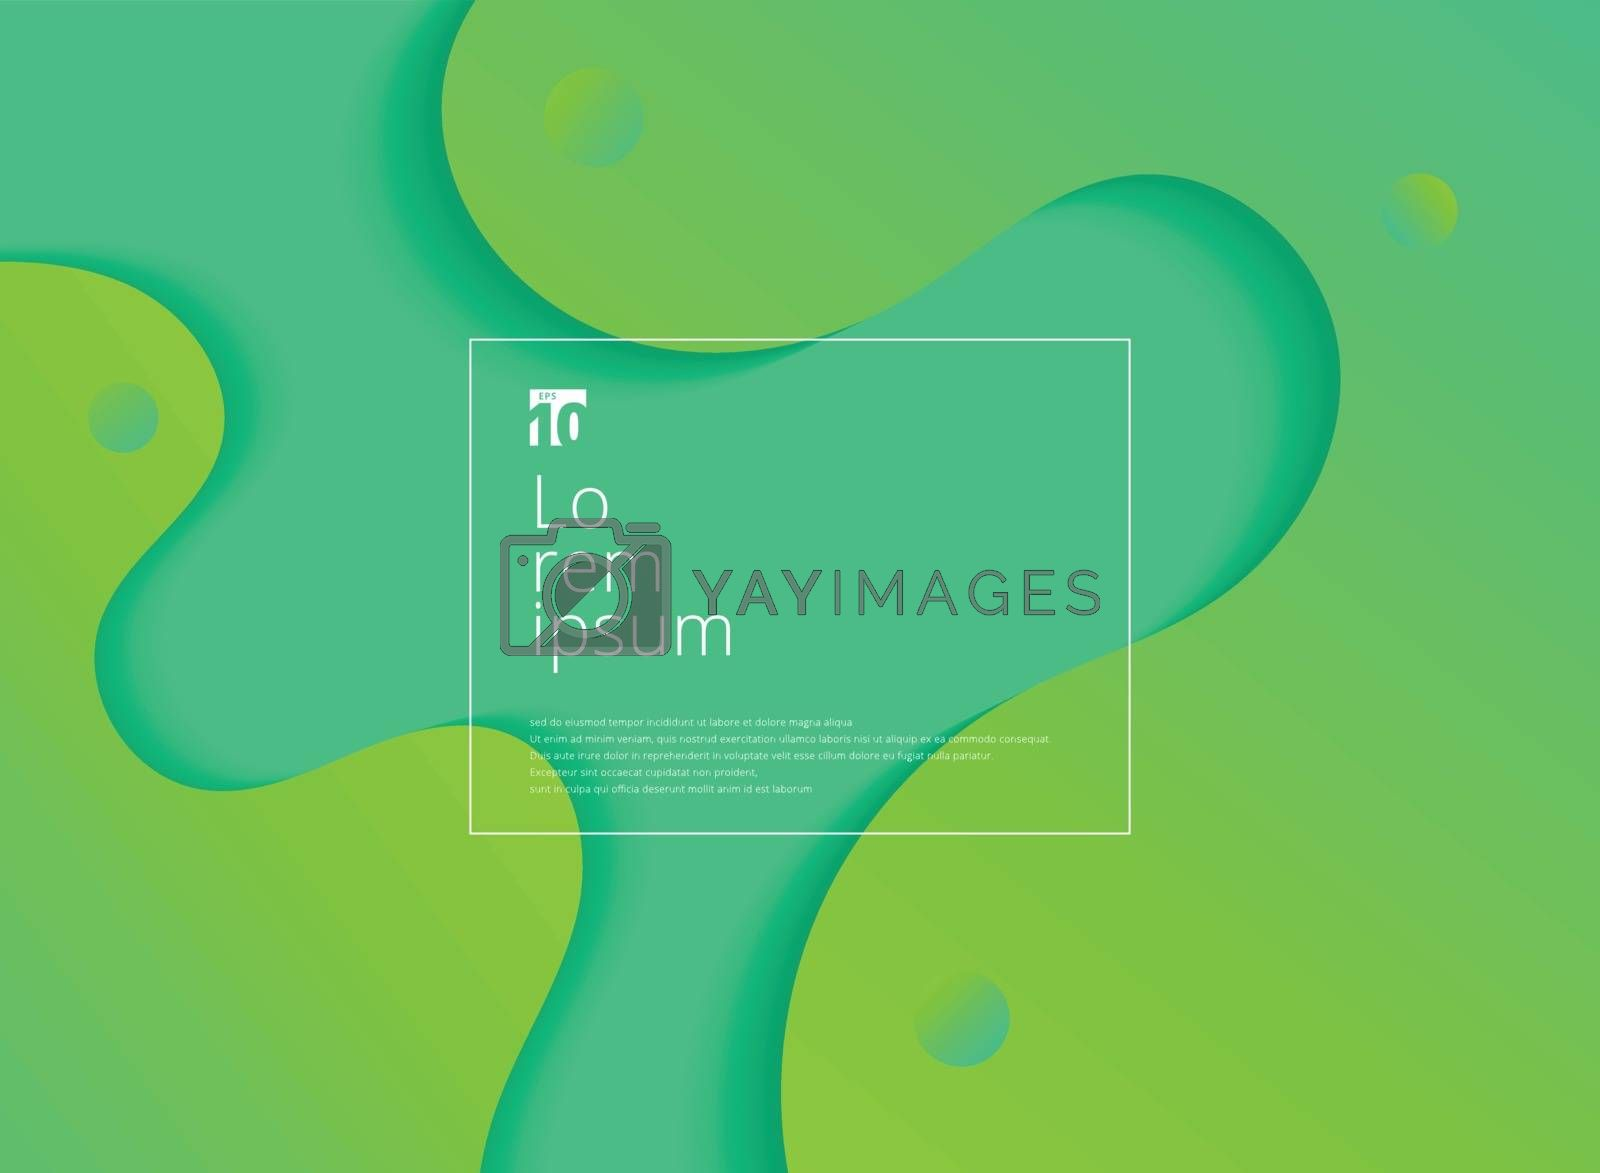 Abstract wavy geometric dynamic 3D green background. Trendy gradient fluid shapes composition modern concept. Vector illustration